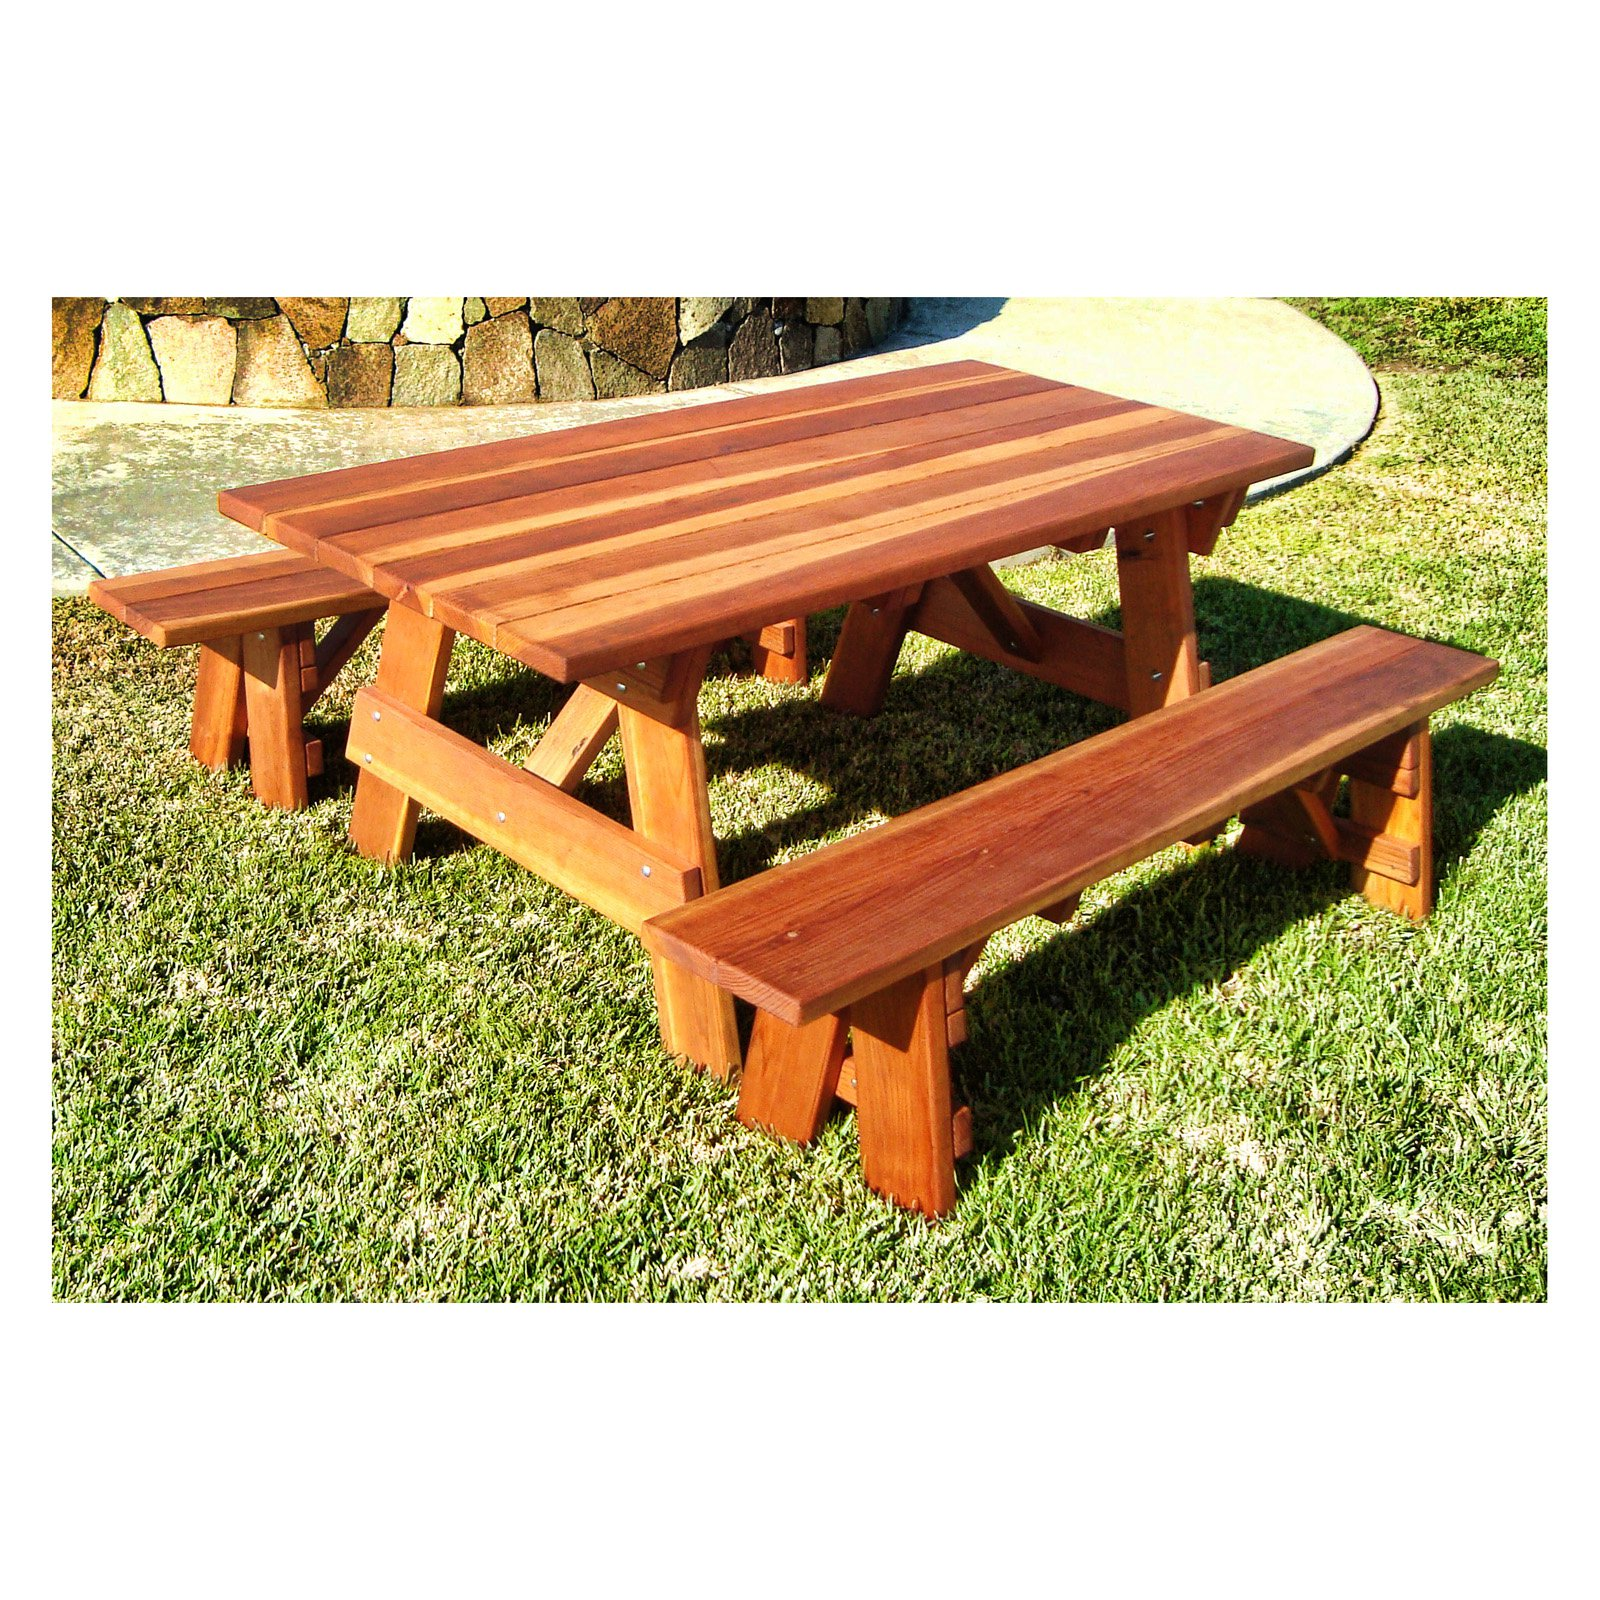 Best Redwood Outdoor Farmers Picnic Table and Benches by RTMEX Inc